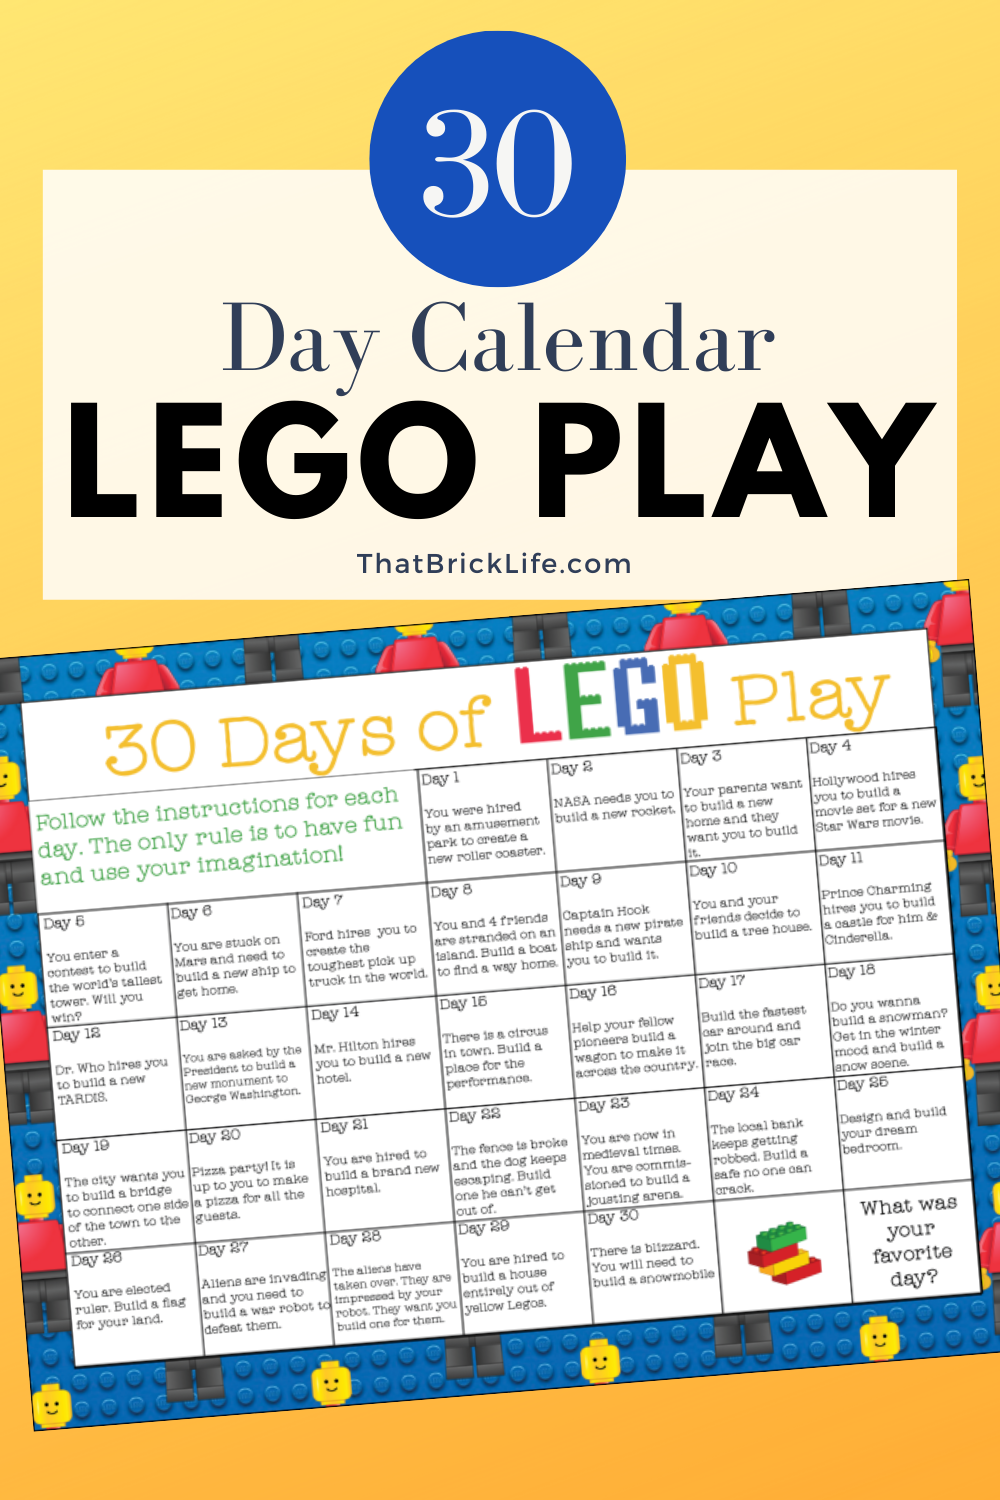 We put together a 30 Days of LEGO Play calendar. It's a great way to really challenge kids (or yourself) to create something new with their LEGO bricks!